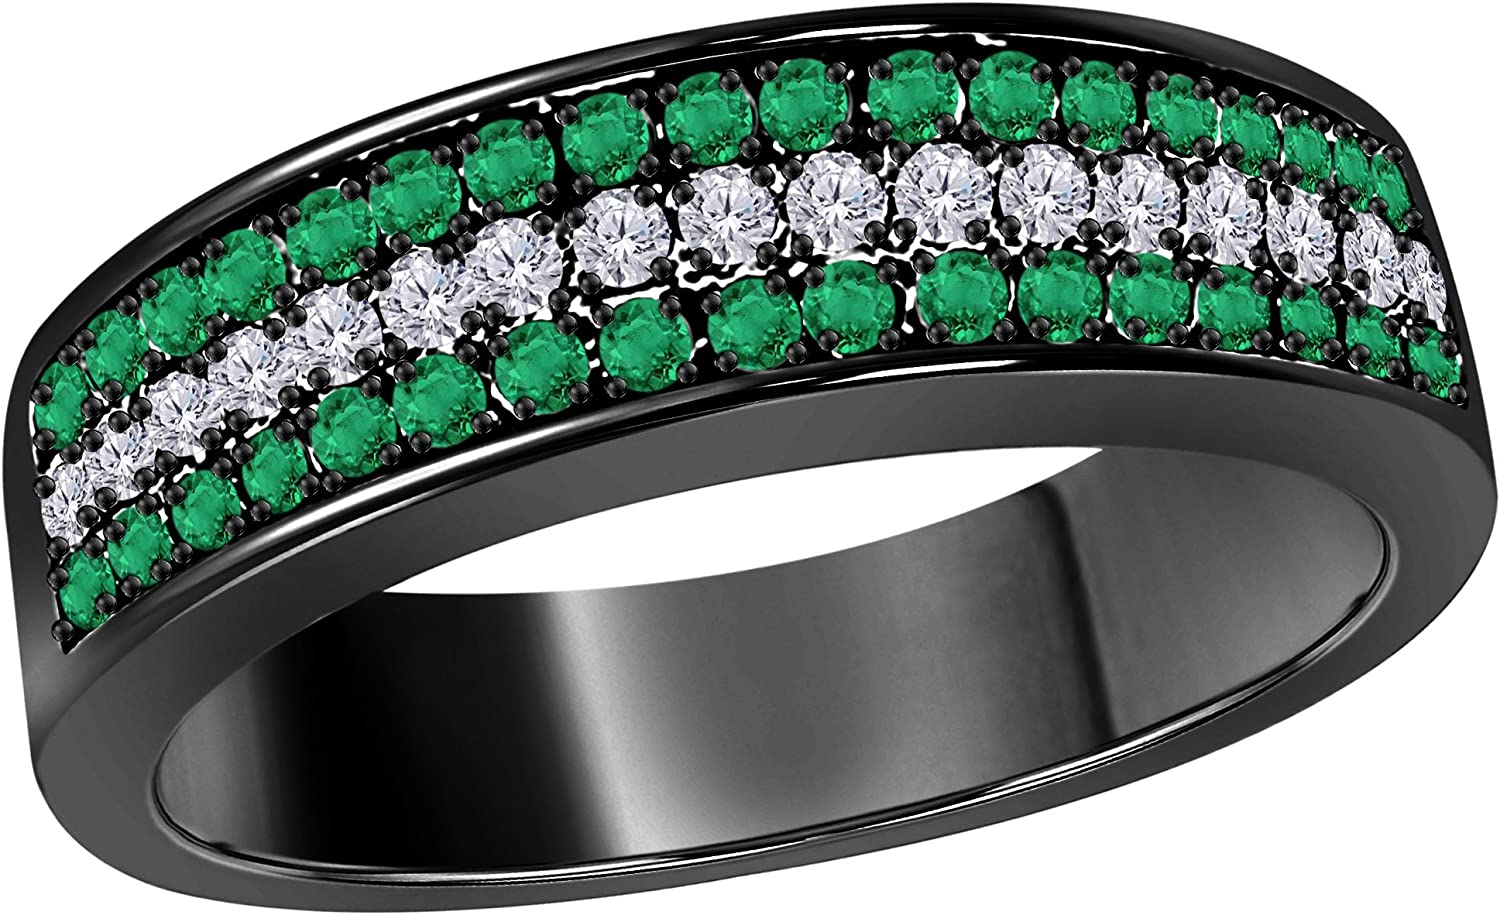 Silver Gems Factory 6MM 14K Black Gold Plated 0.50CT Green Emerald /& White Cz Diamond Ring 3 Row Pave Half Eternity Mens Anniversary Wedding Band Ring